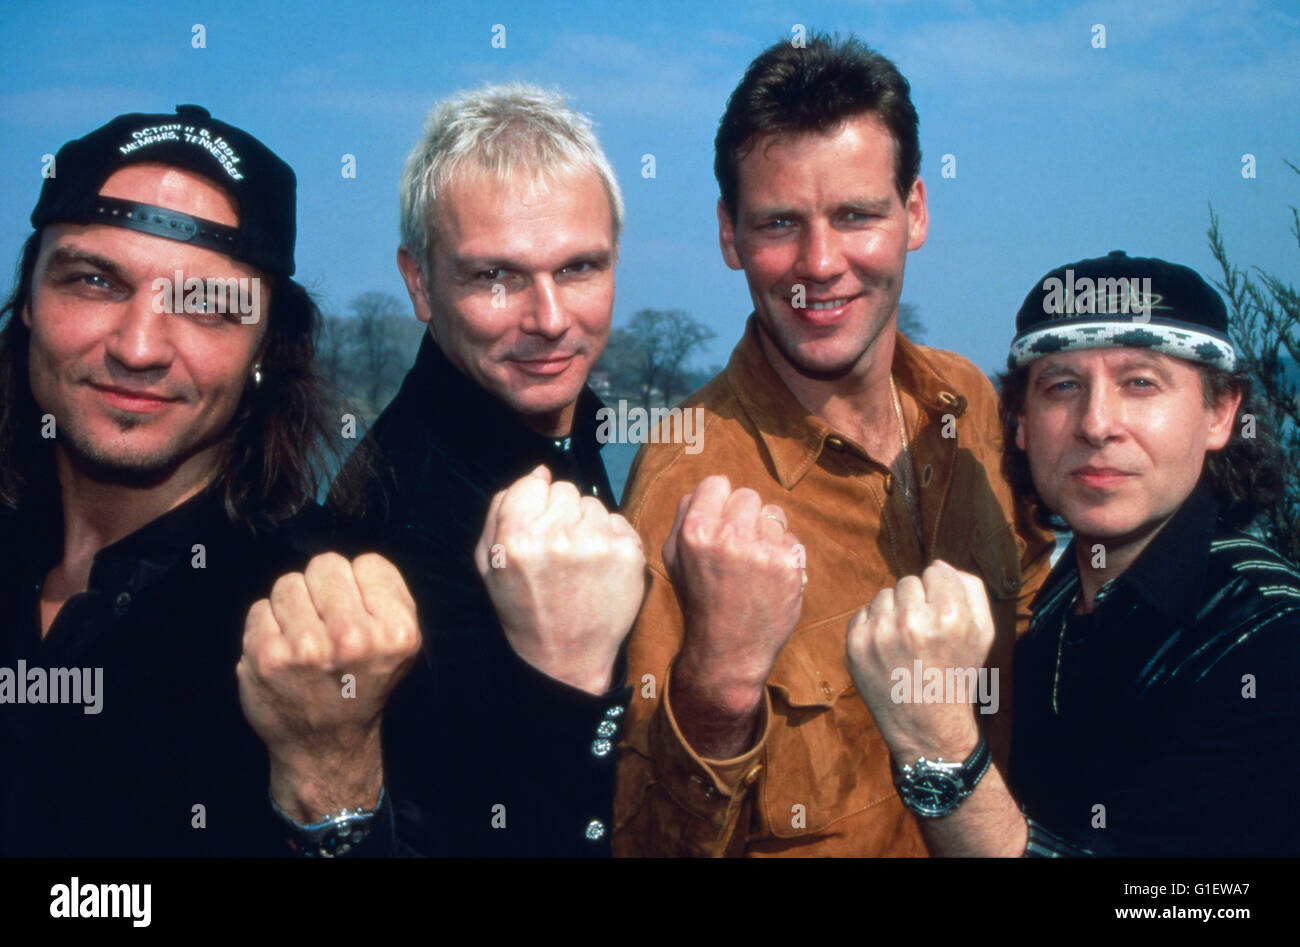 scorpions band stock photos scorpions band stock images alamy. Black Bedroom Furniture Sets. Home Design Ideas